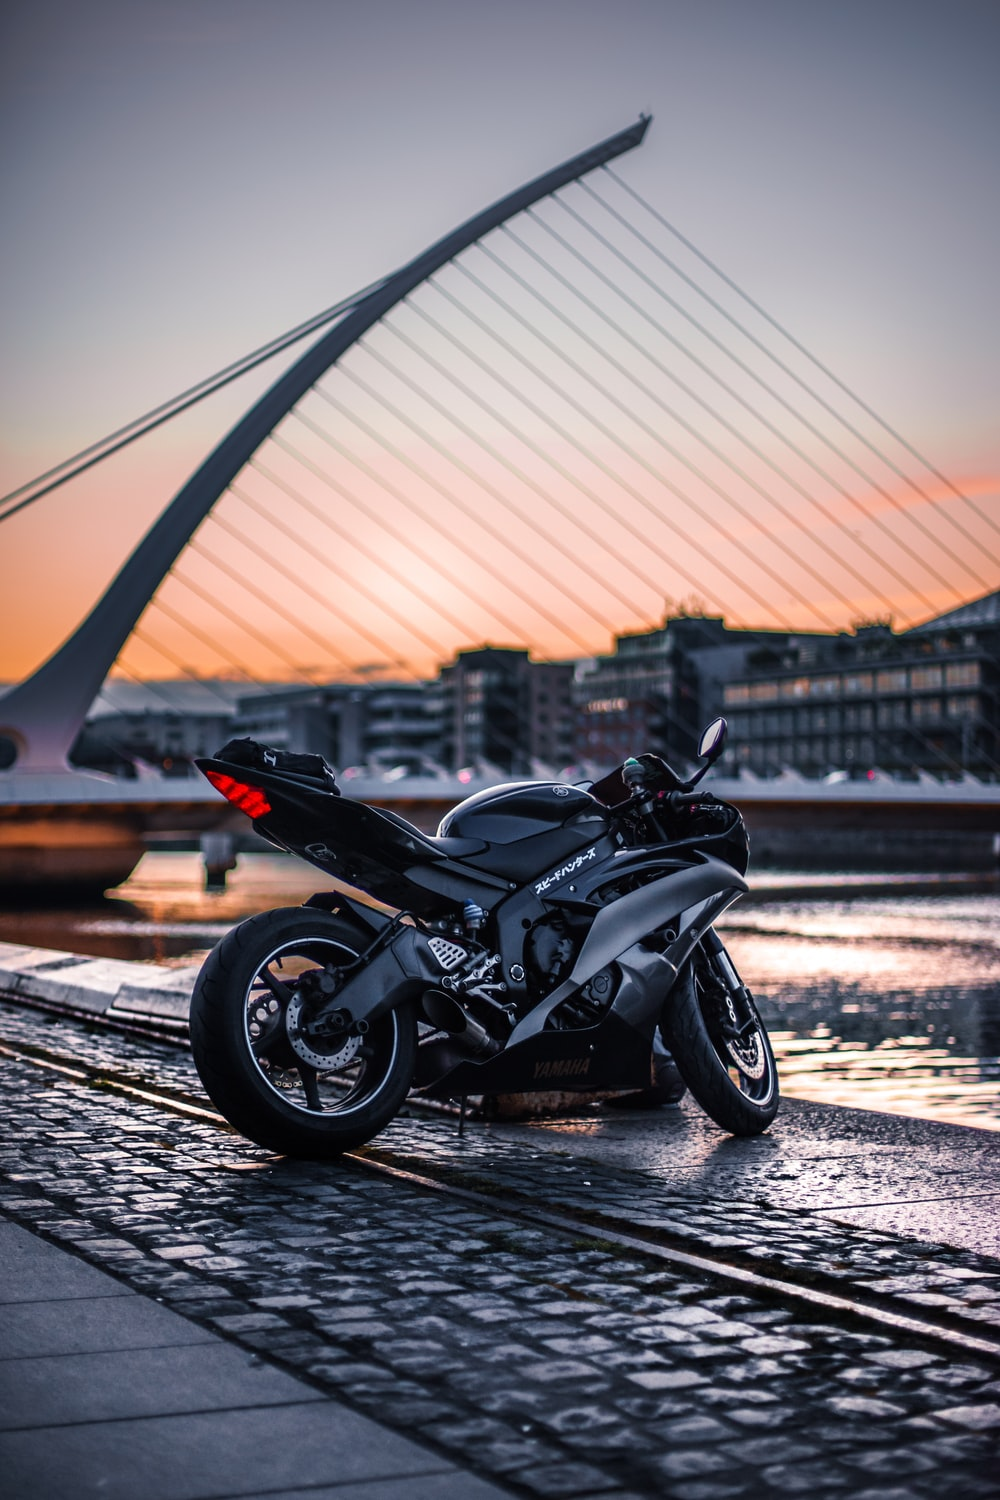 750 Motorbike Pictures Download Images Stock Photos on 1000x1500